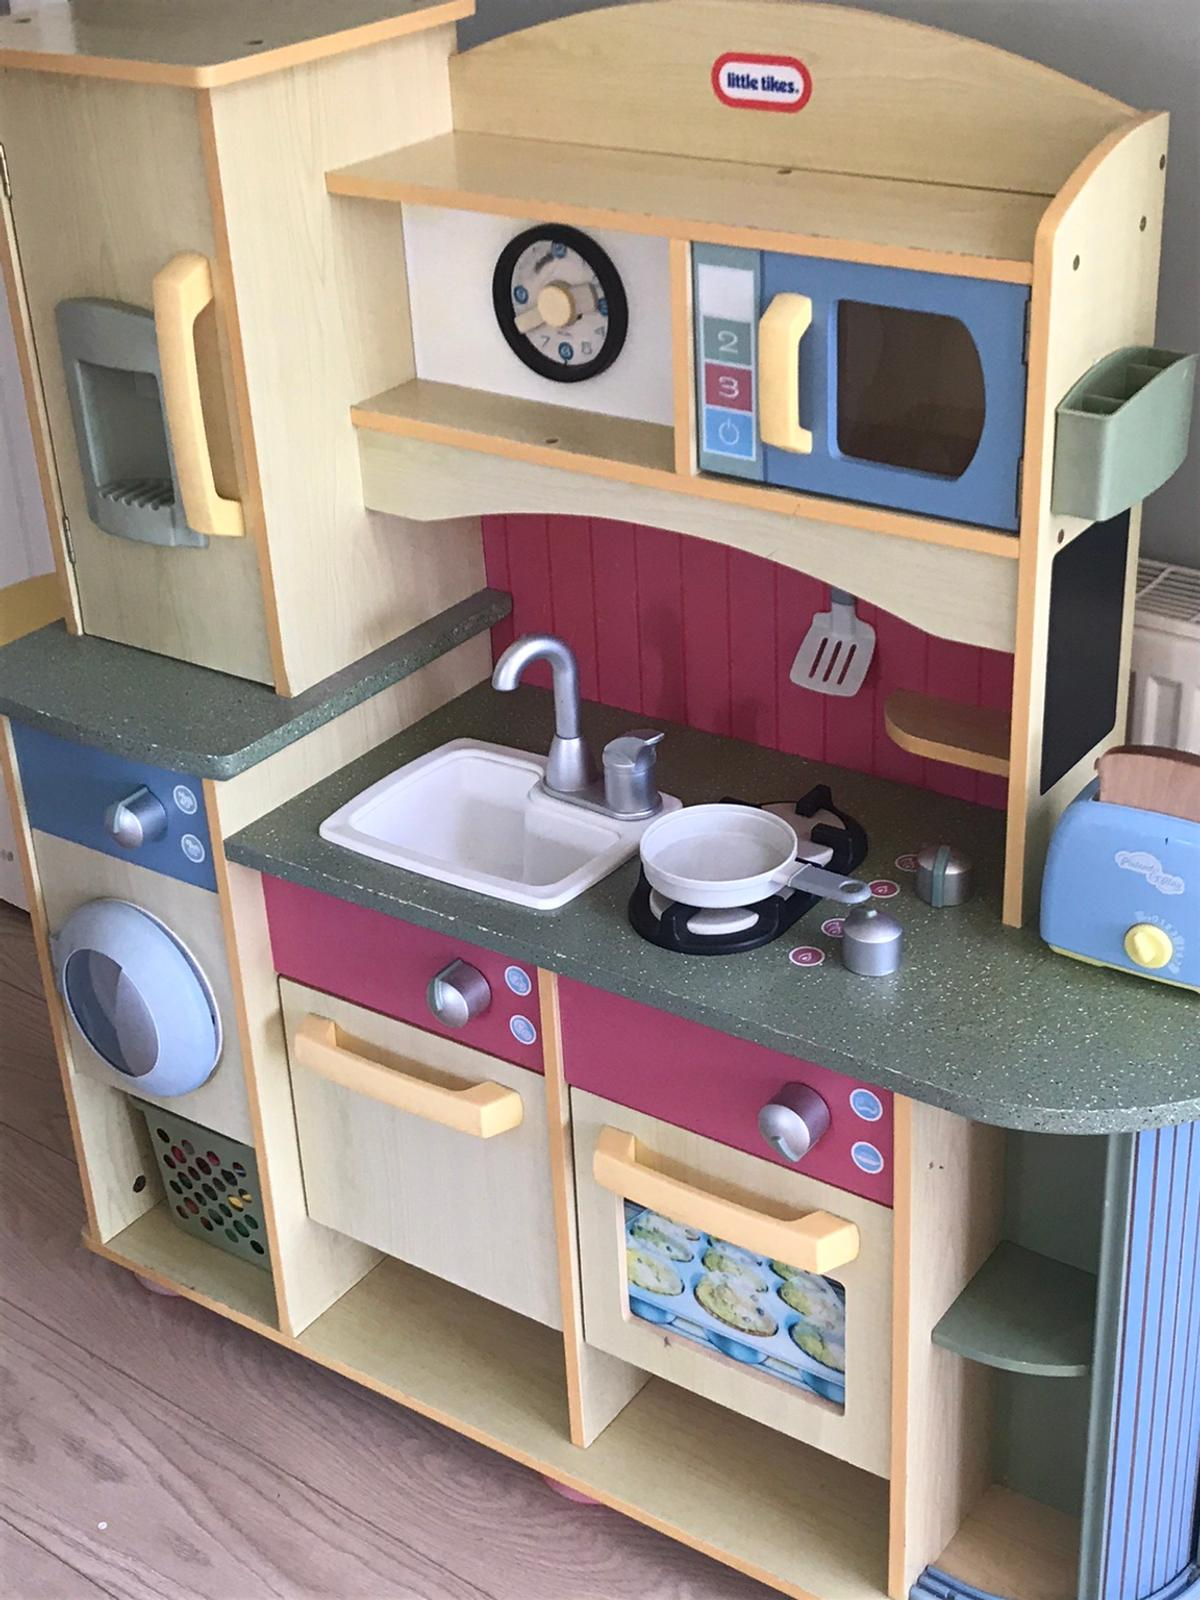 Lovely used wood children's kitchen. Pull out shelf Washing machine Fridge Dishwasher Oven with 2-way baked / unbaked image Sink Job Cupboard Microwave  Some food / kitchen accessories included  Height 102cm Width 98cm Depth 35cm  Collection only